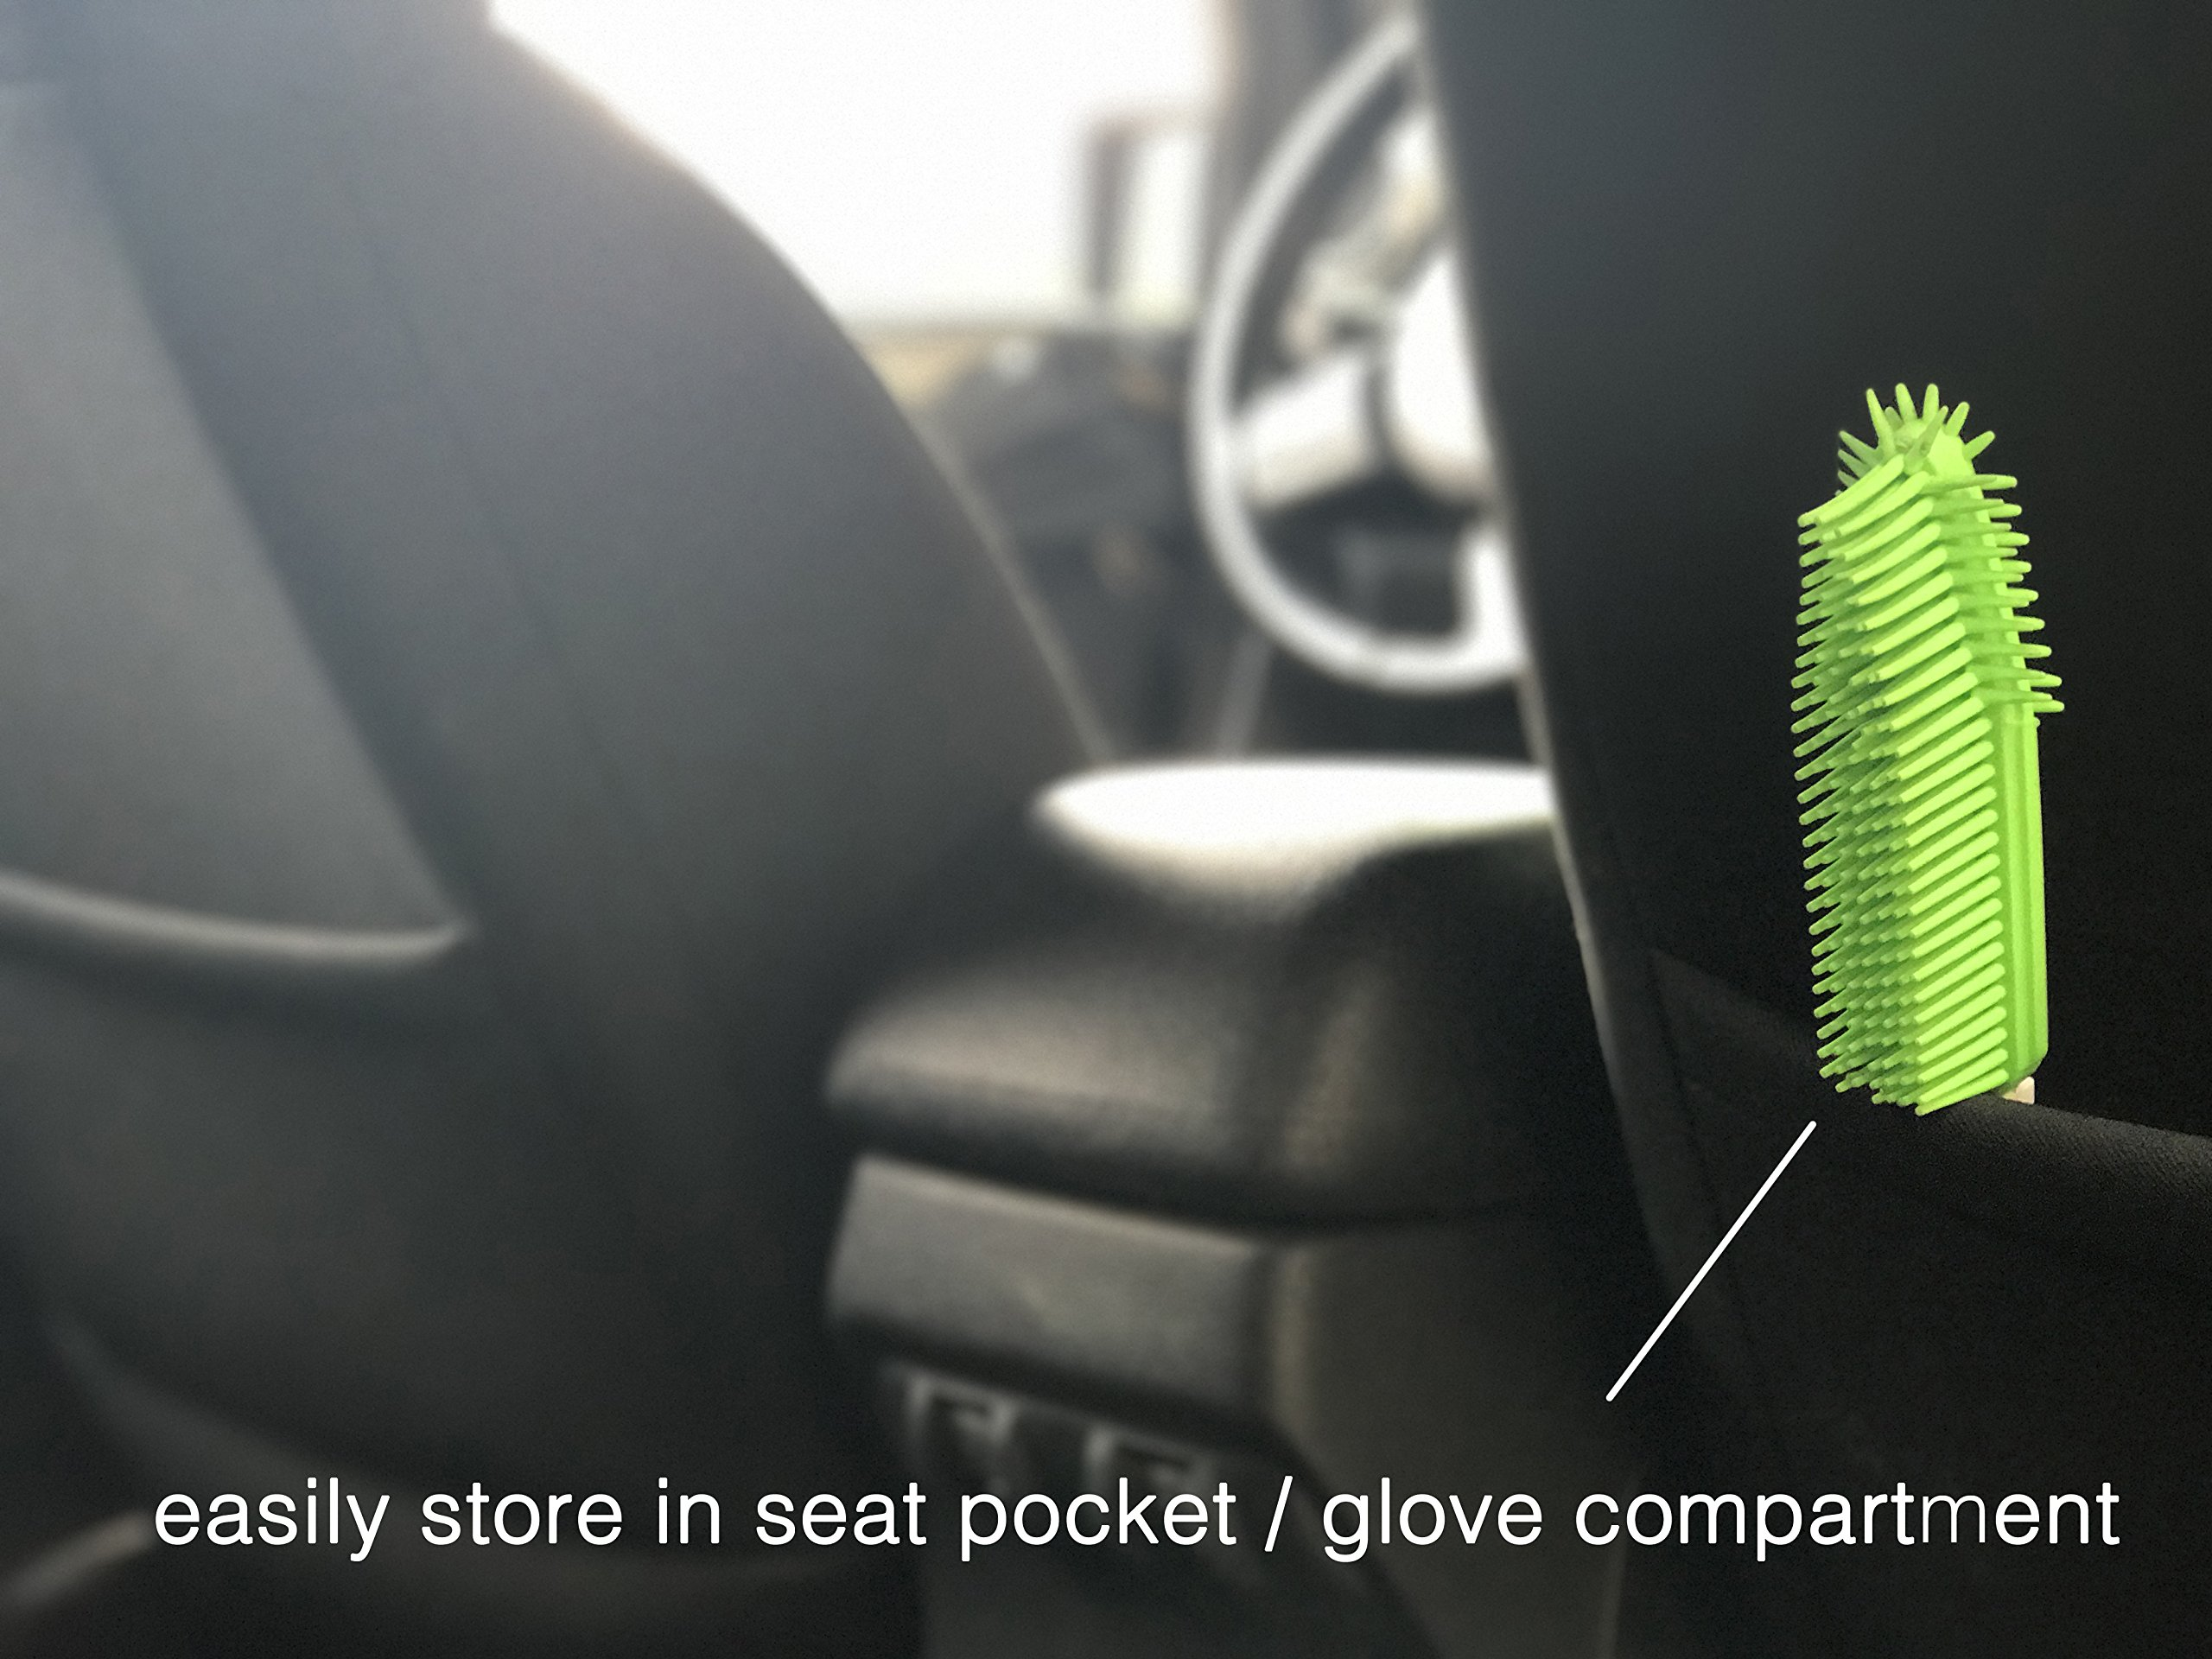 Best Car & Auto Detailing Brush for Pet Hair Removal and Car Upholstery Cleaner - Best Pet Hair Remover for Dog And Cat Hair - Great On Furniture (Bedding, Carpets, Blankets) – Use As A Lint Remover f by Dasksha (Image #5)